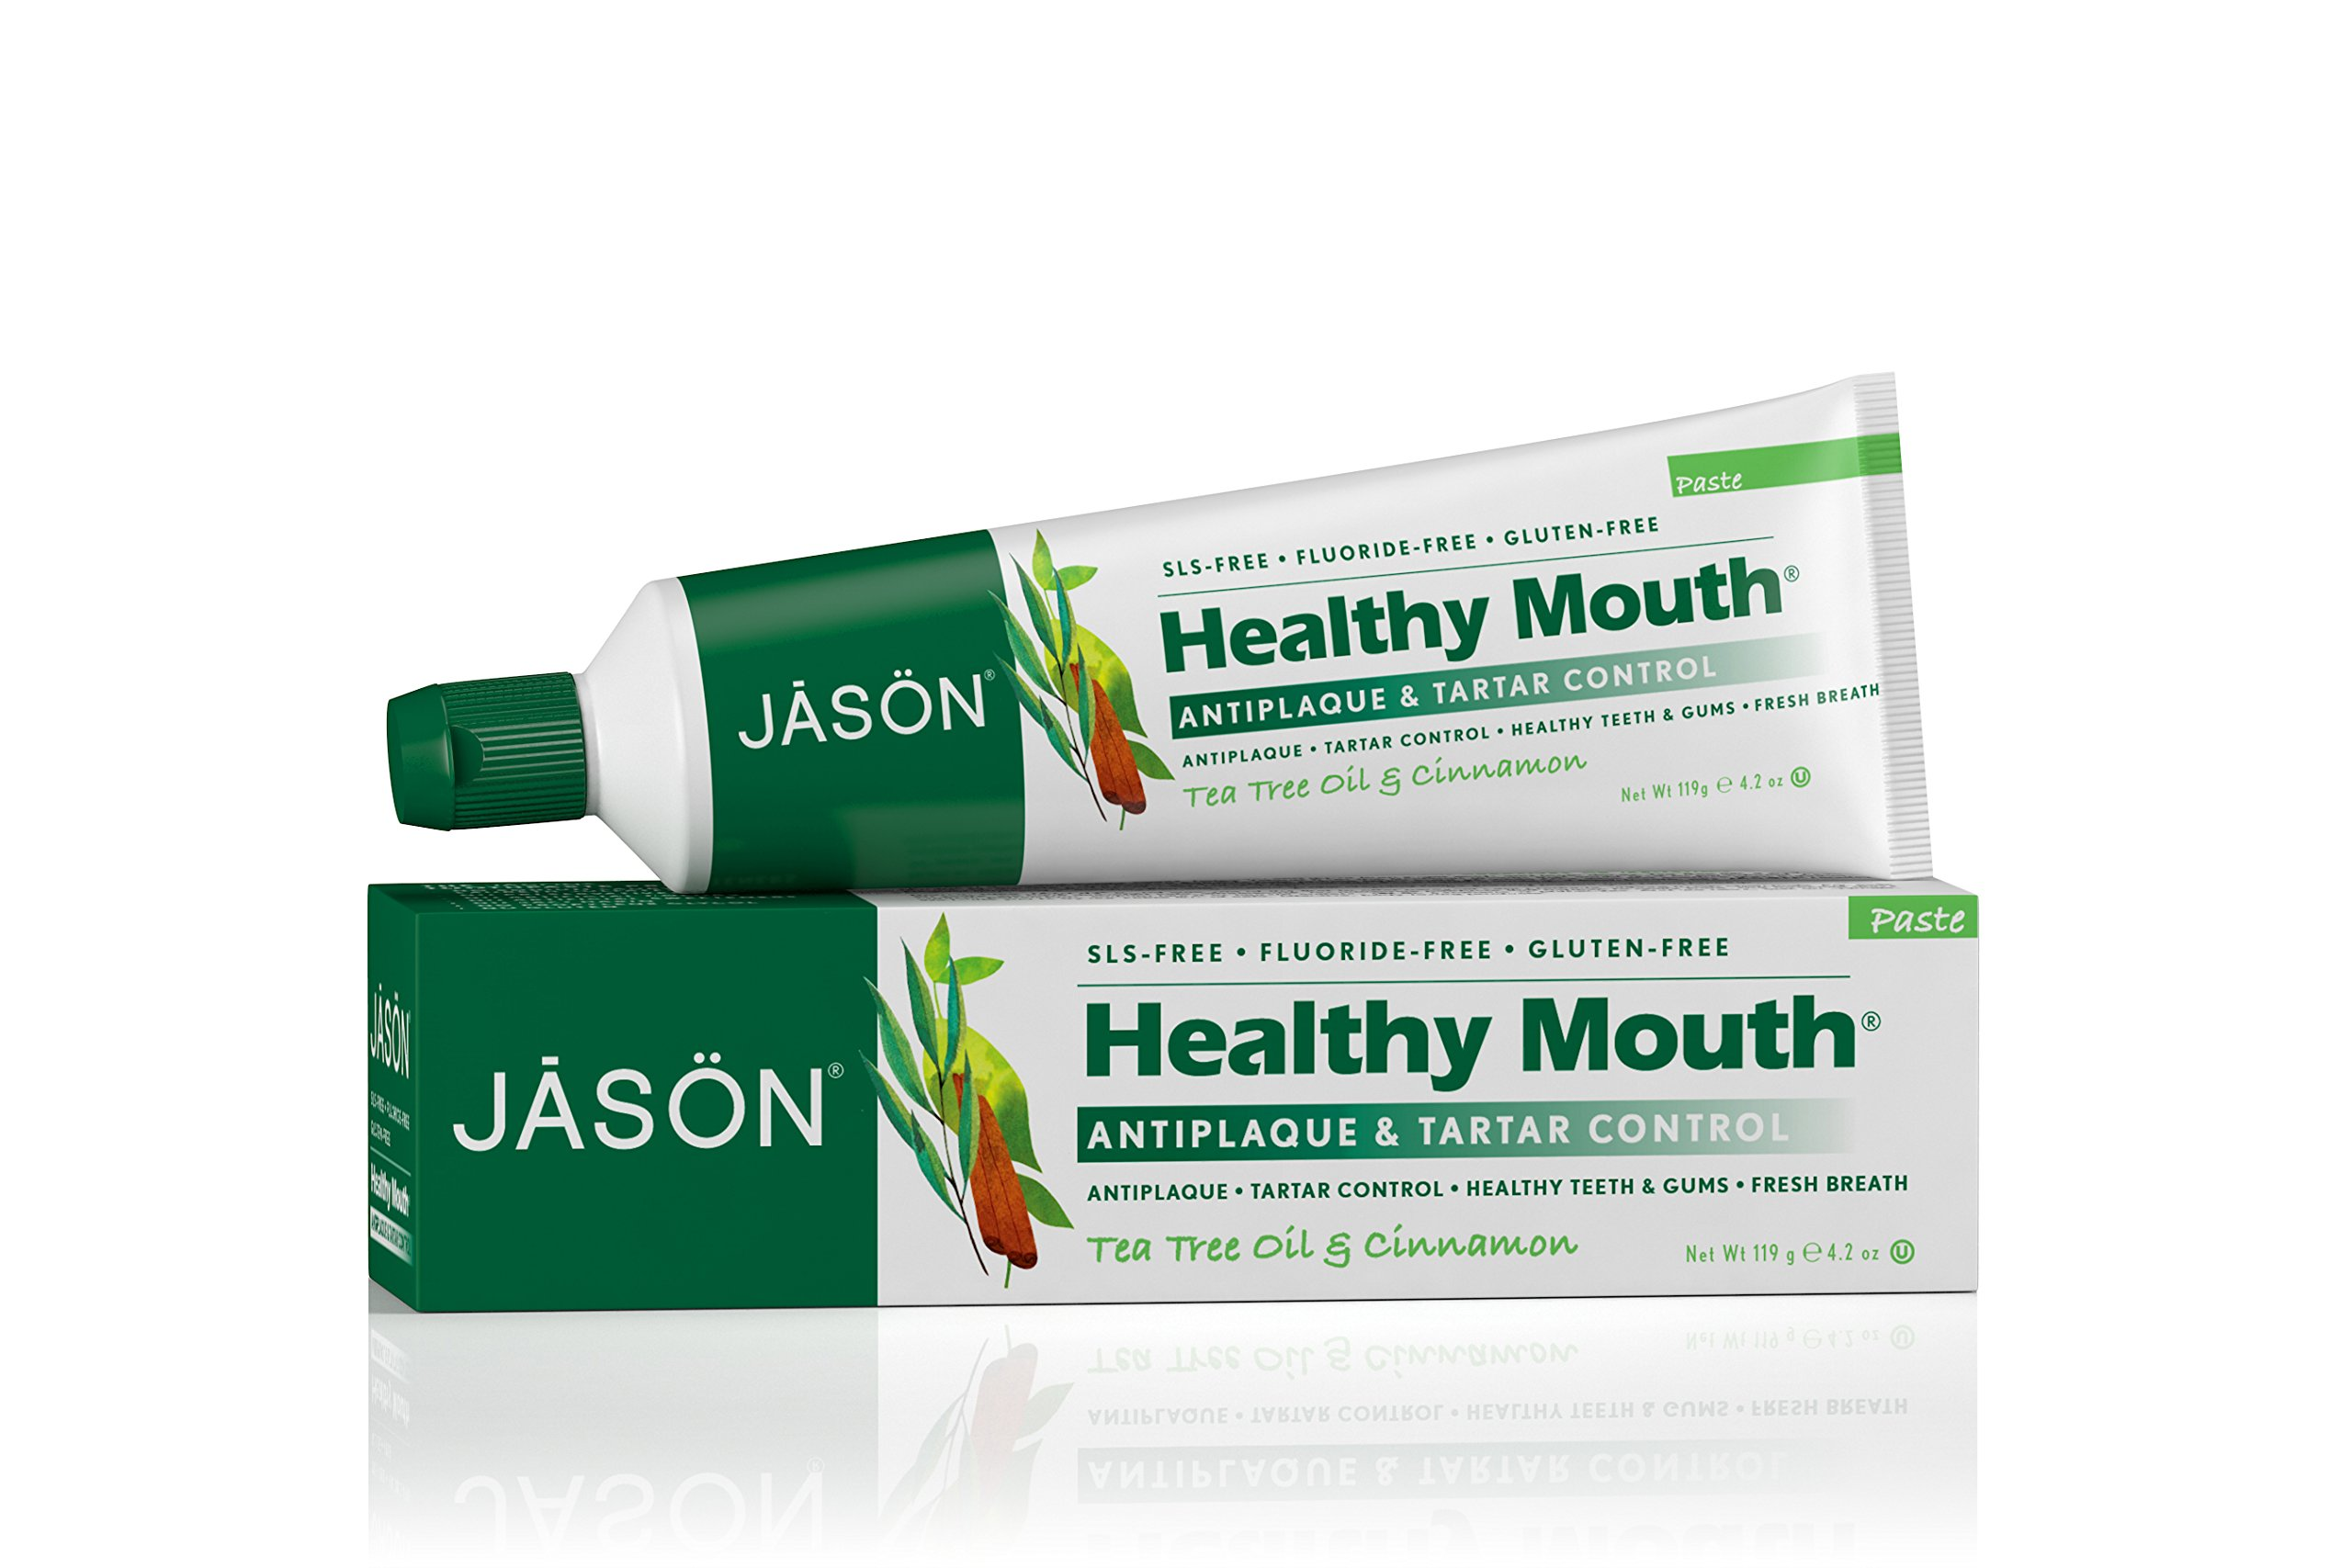 Jason Healthy Mouth Toothpaste, Tea Tree Oil & Cinnamon, 4.2 Ounces